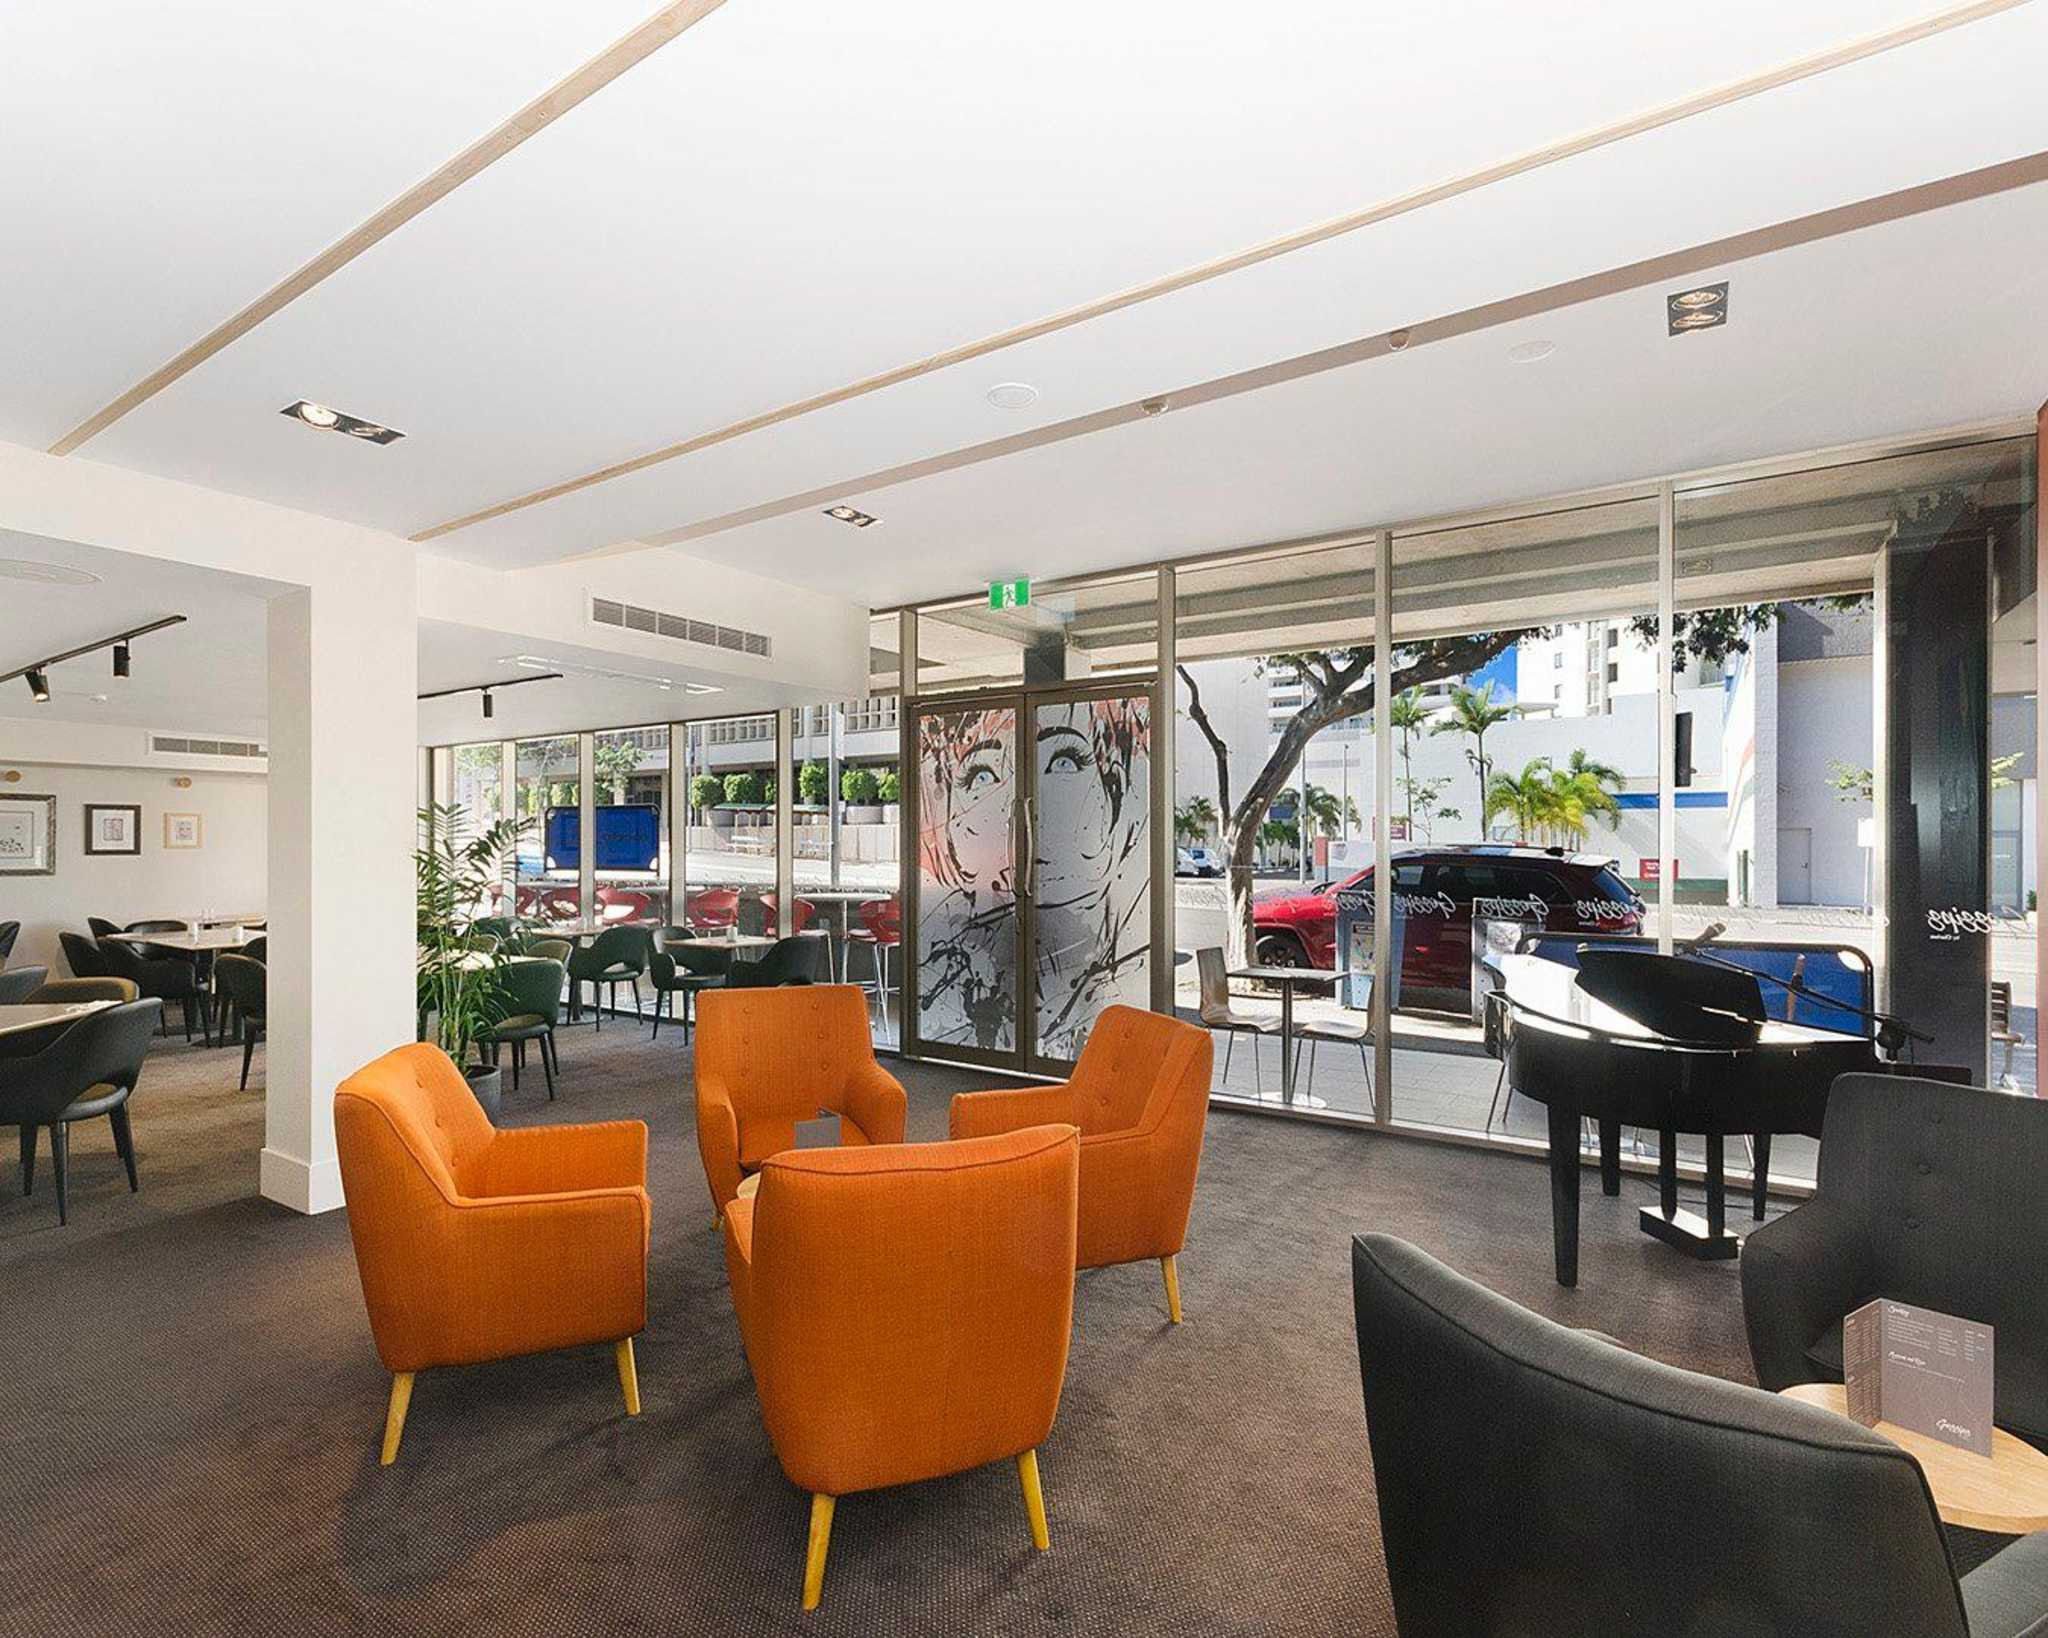 Clarion Hotel Townsville - Townsville, QLD 4810 - (07) 4431 1100   ShowMeLocal.com